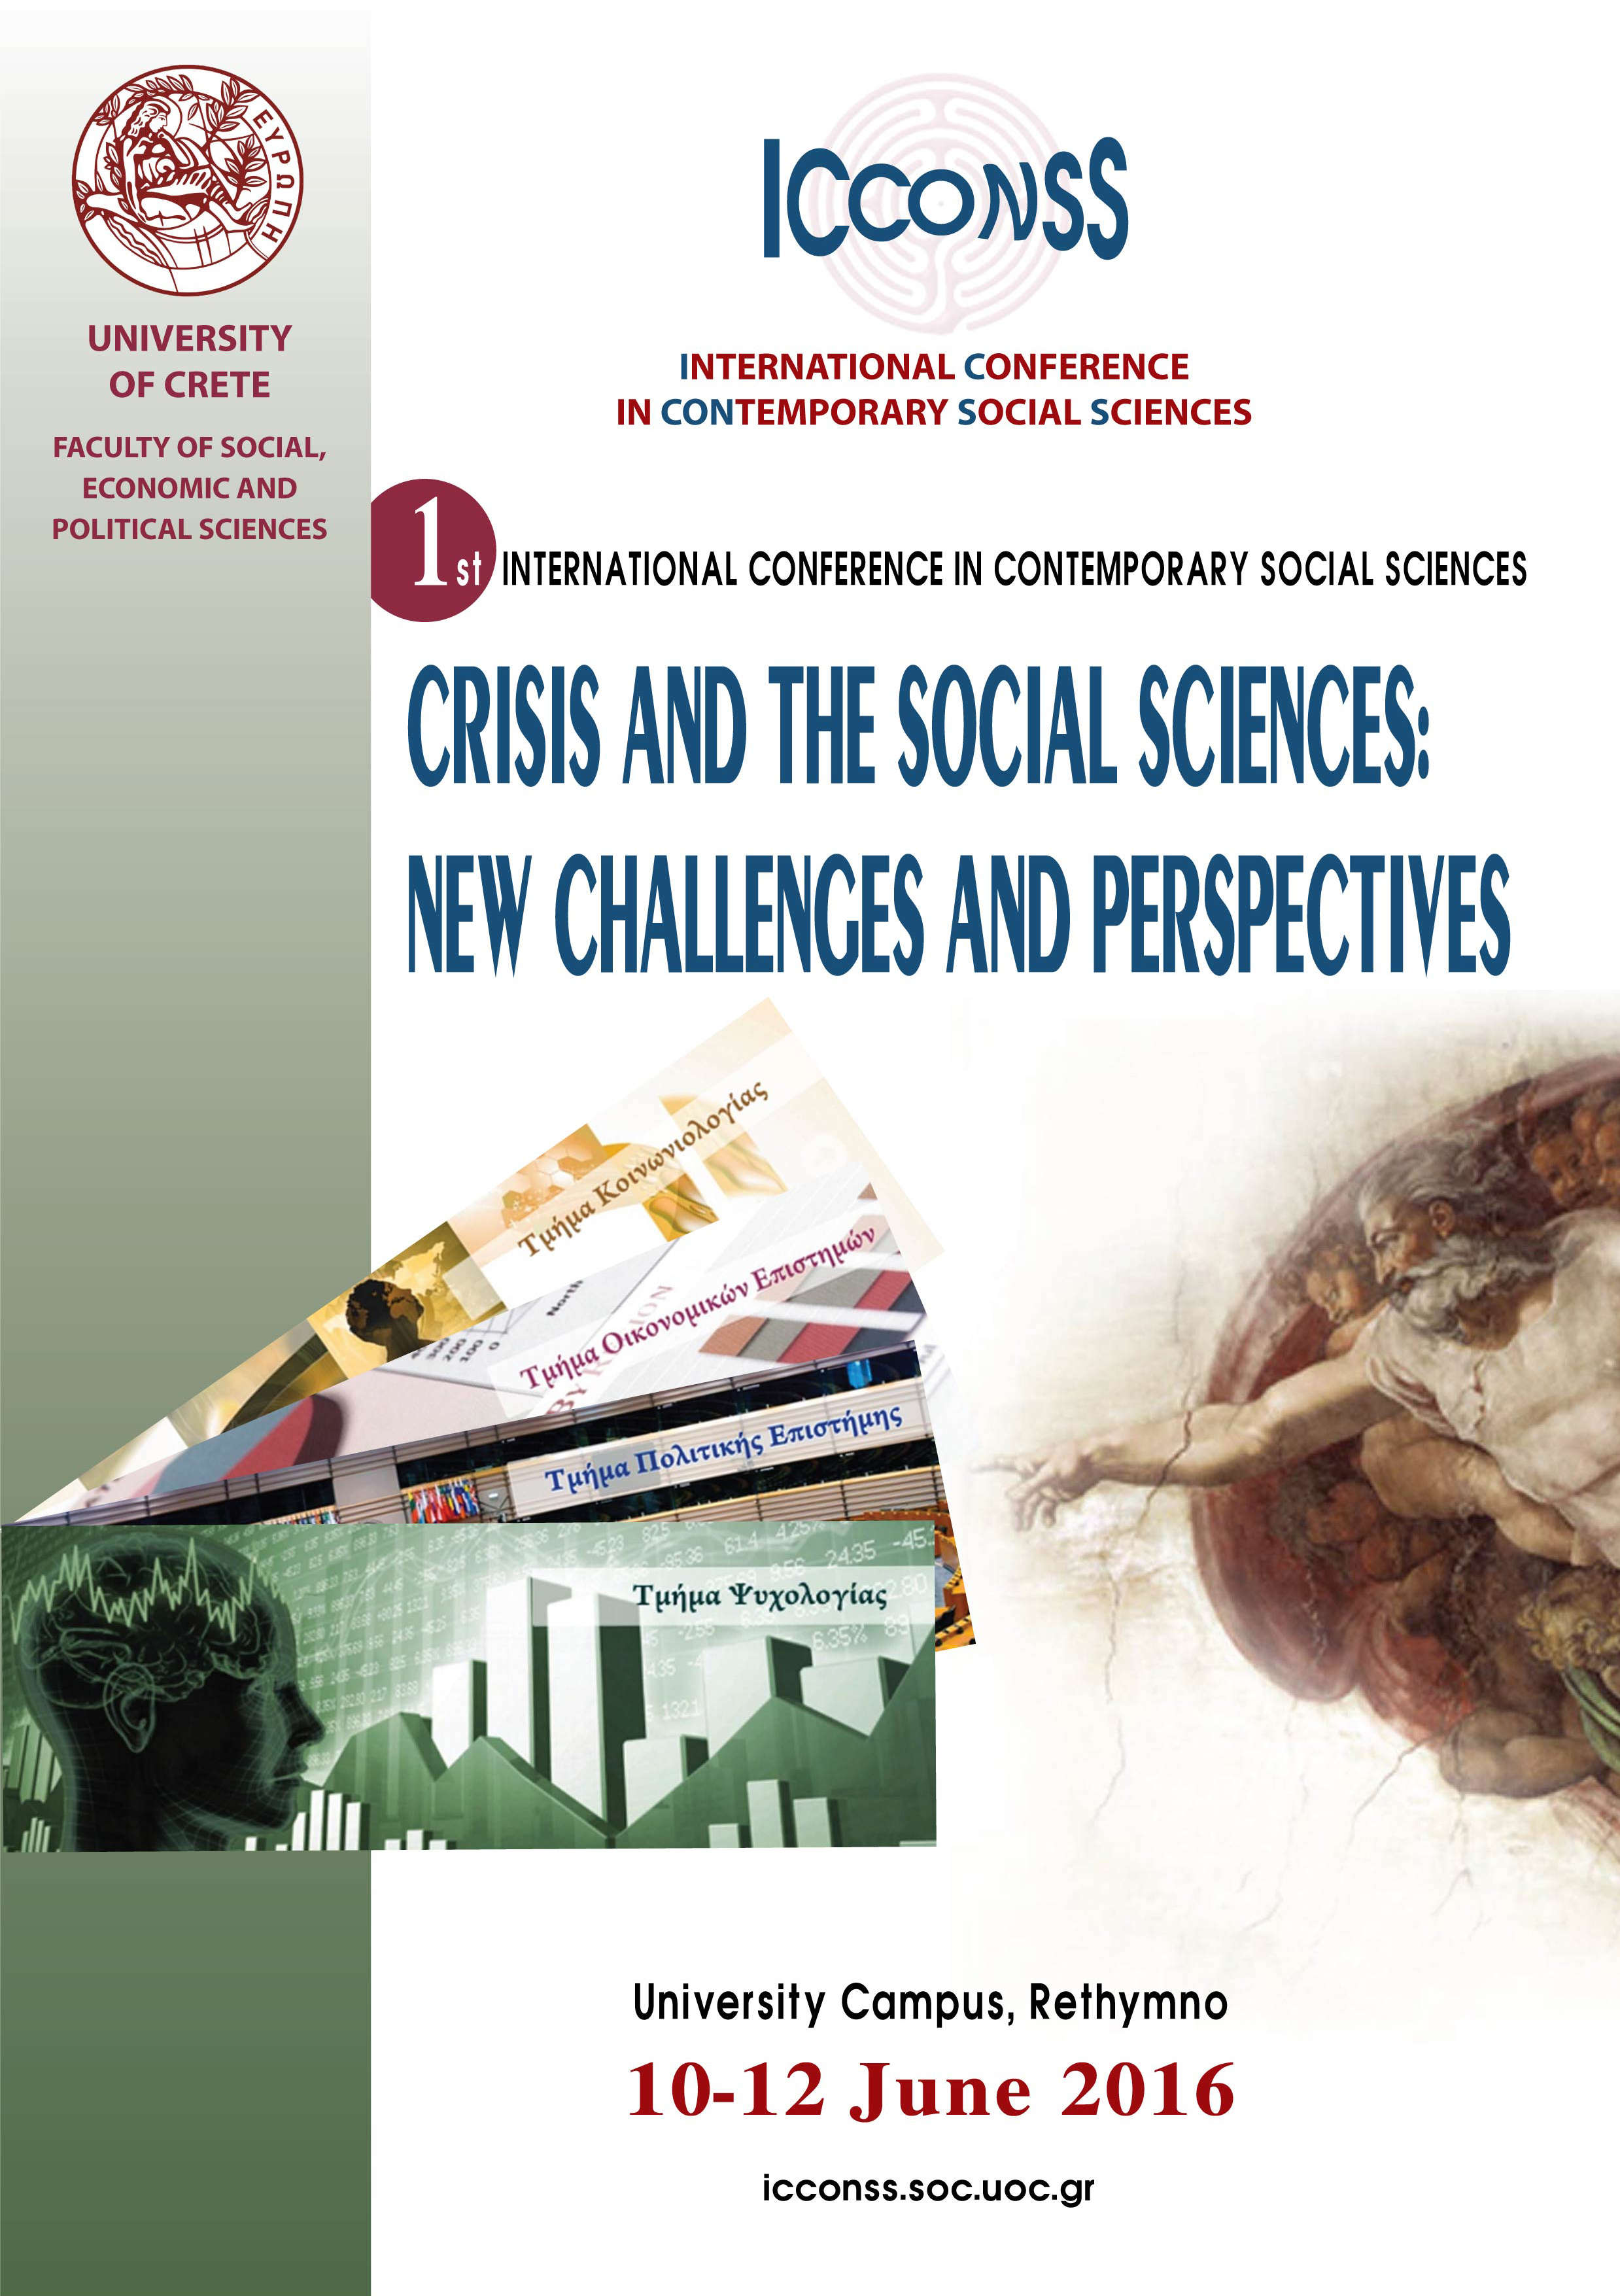 1st International Conference in Contemporary Social Sciences